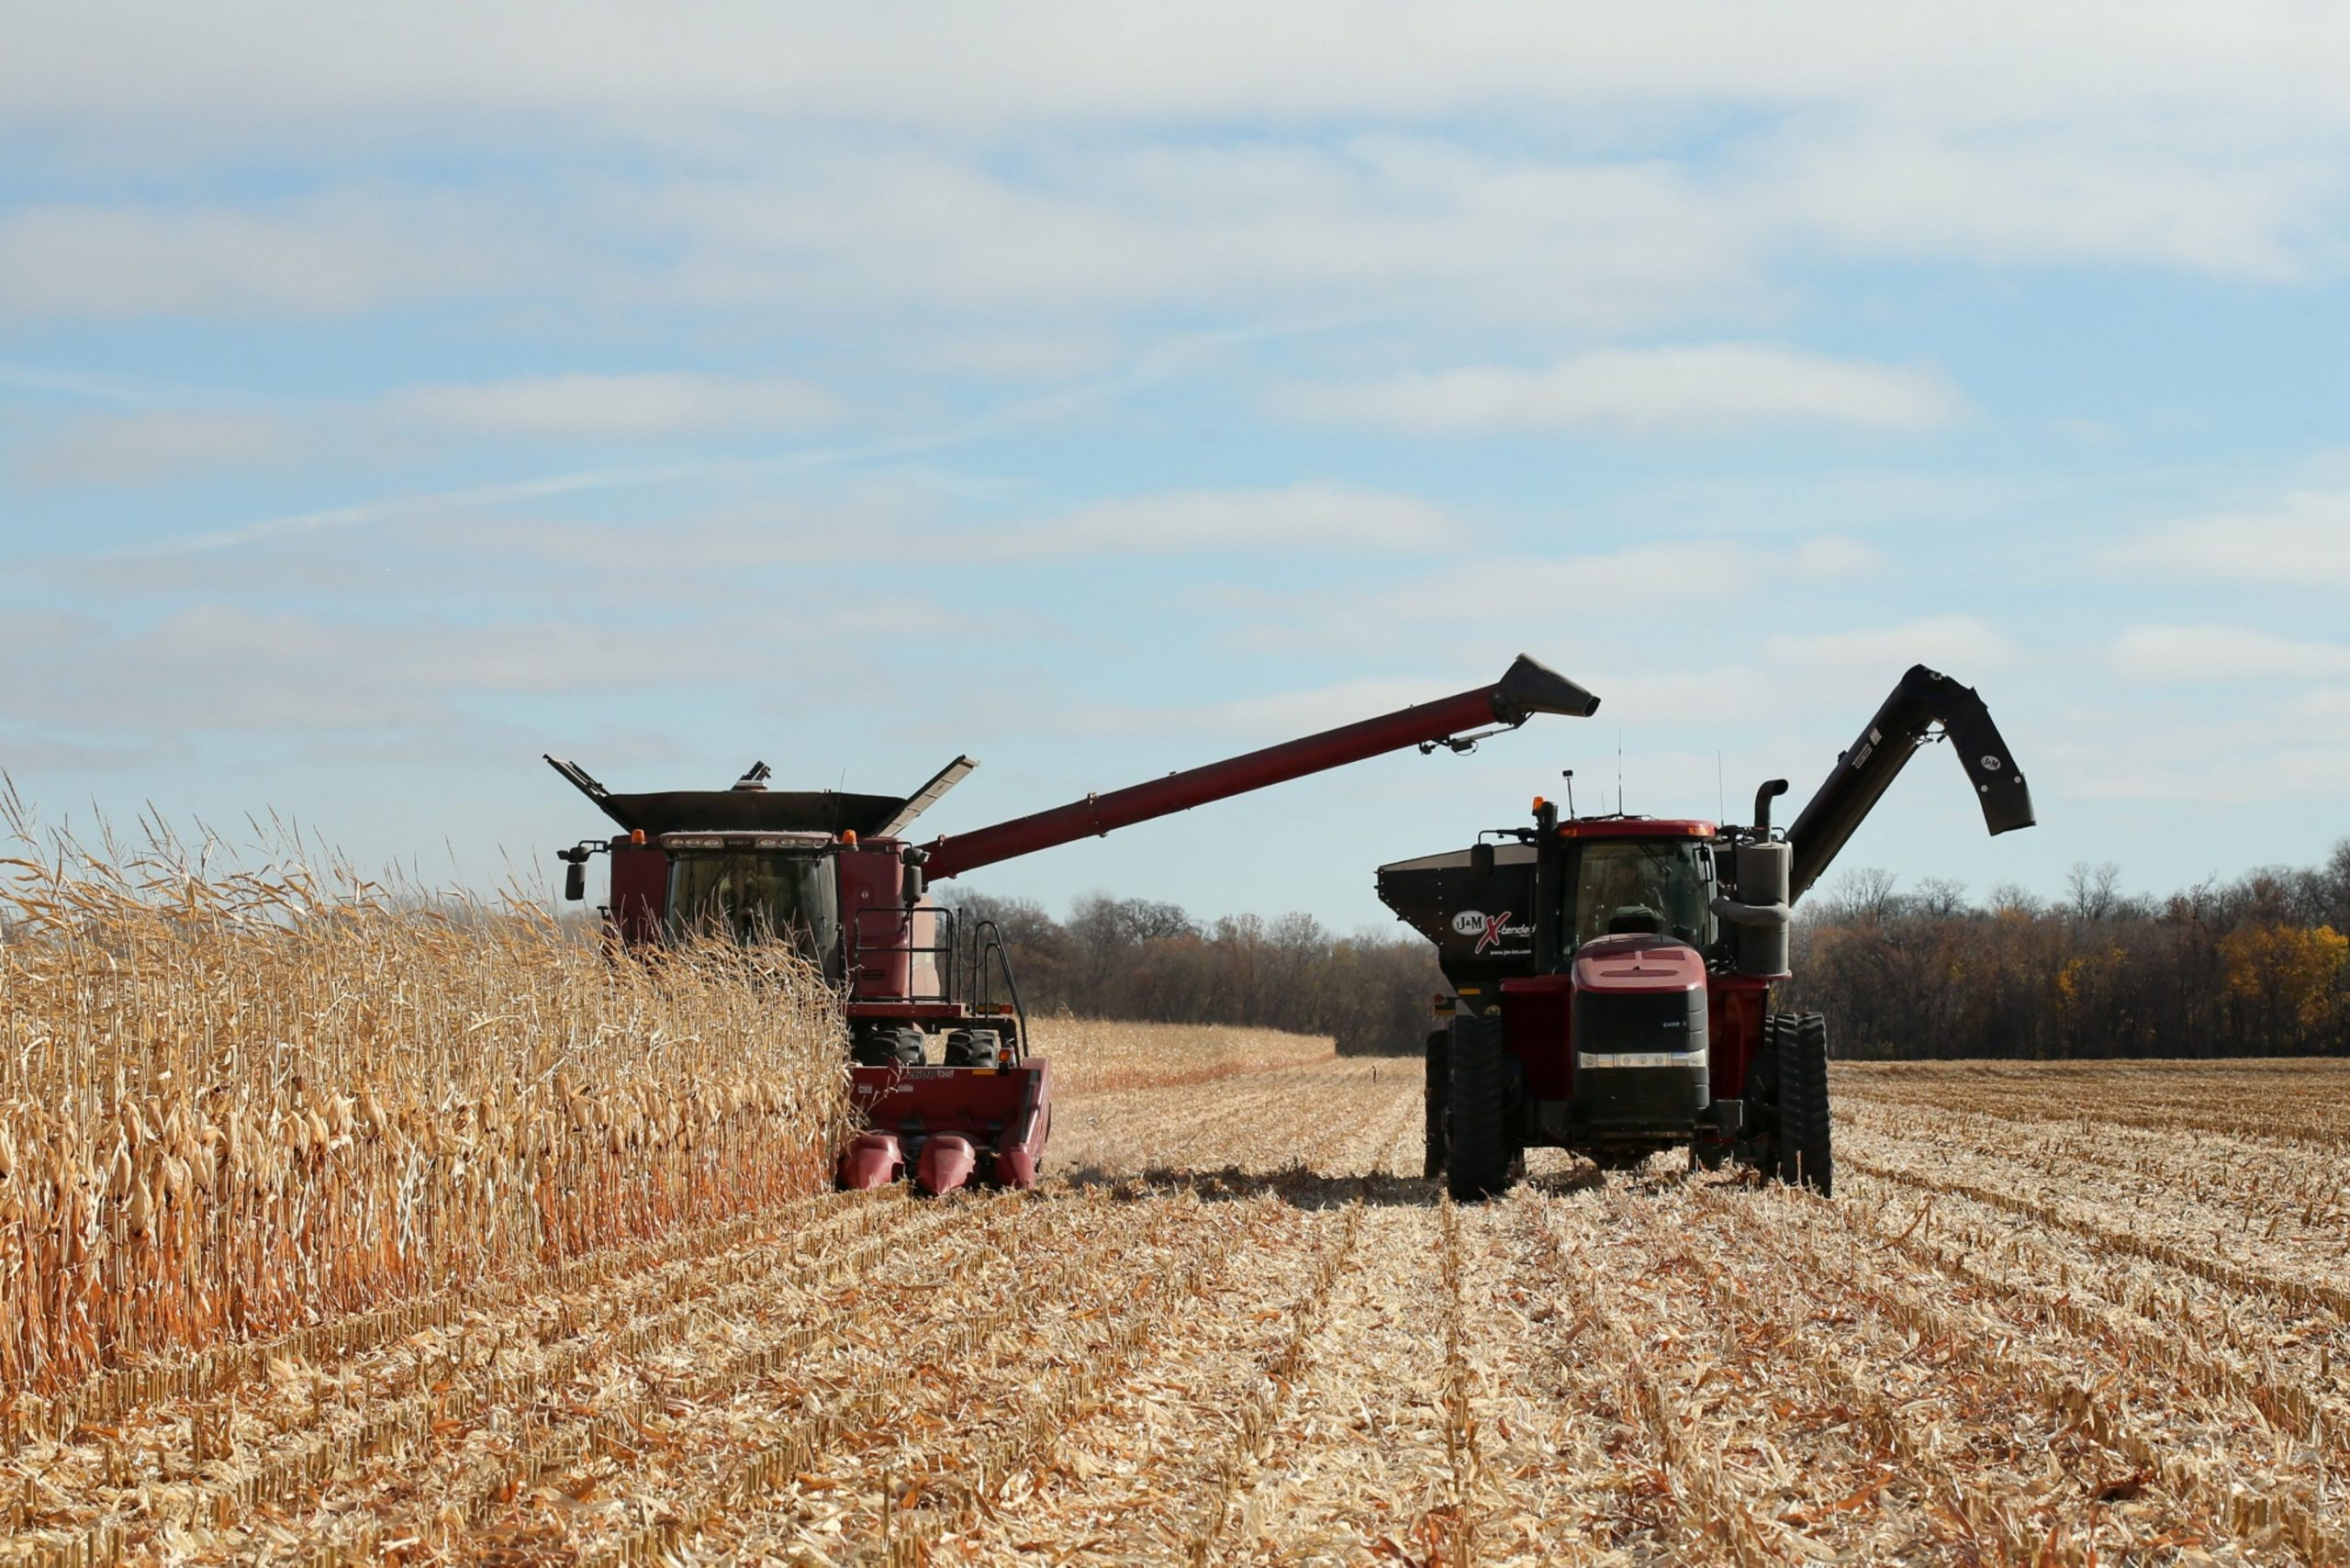 How Will the Surging Grain Prices Impact Farmers?